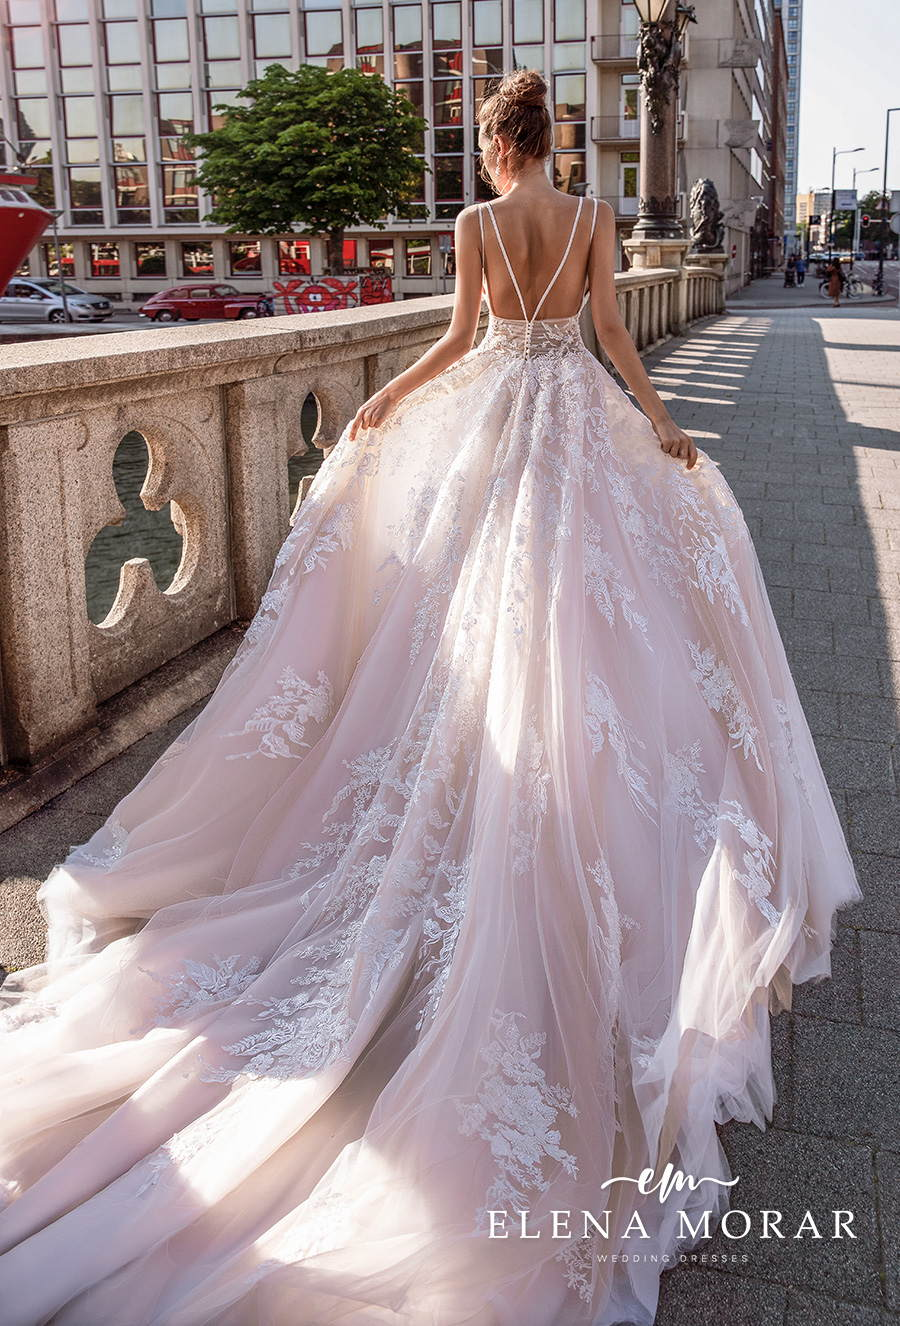 elena morar 2021 rotterdam bridal sleeveless double strap v neck heavily embellished bodice romantic blush a line wedding dress backless v back long train (rm017) bv